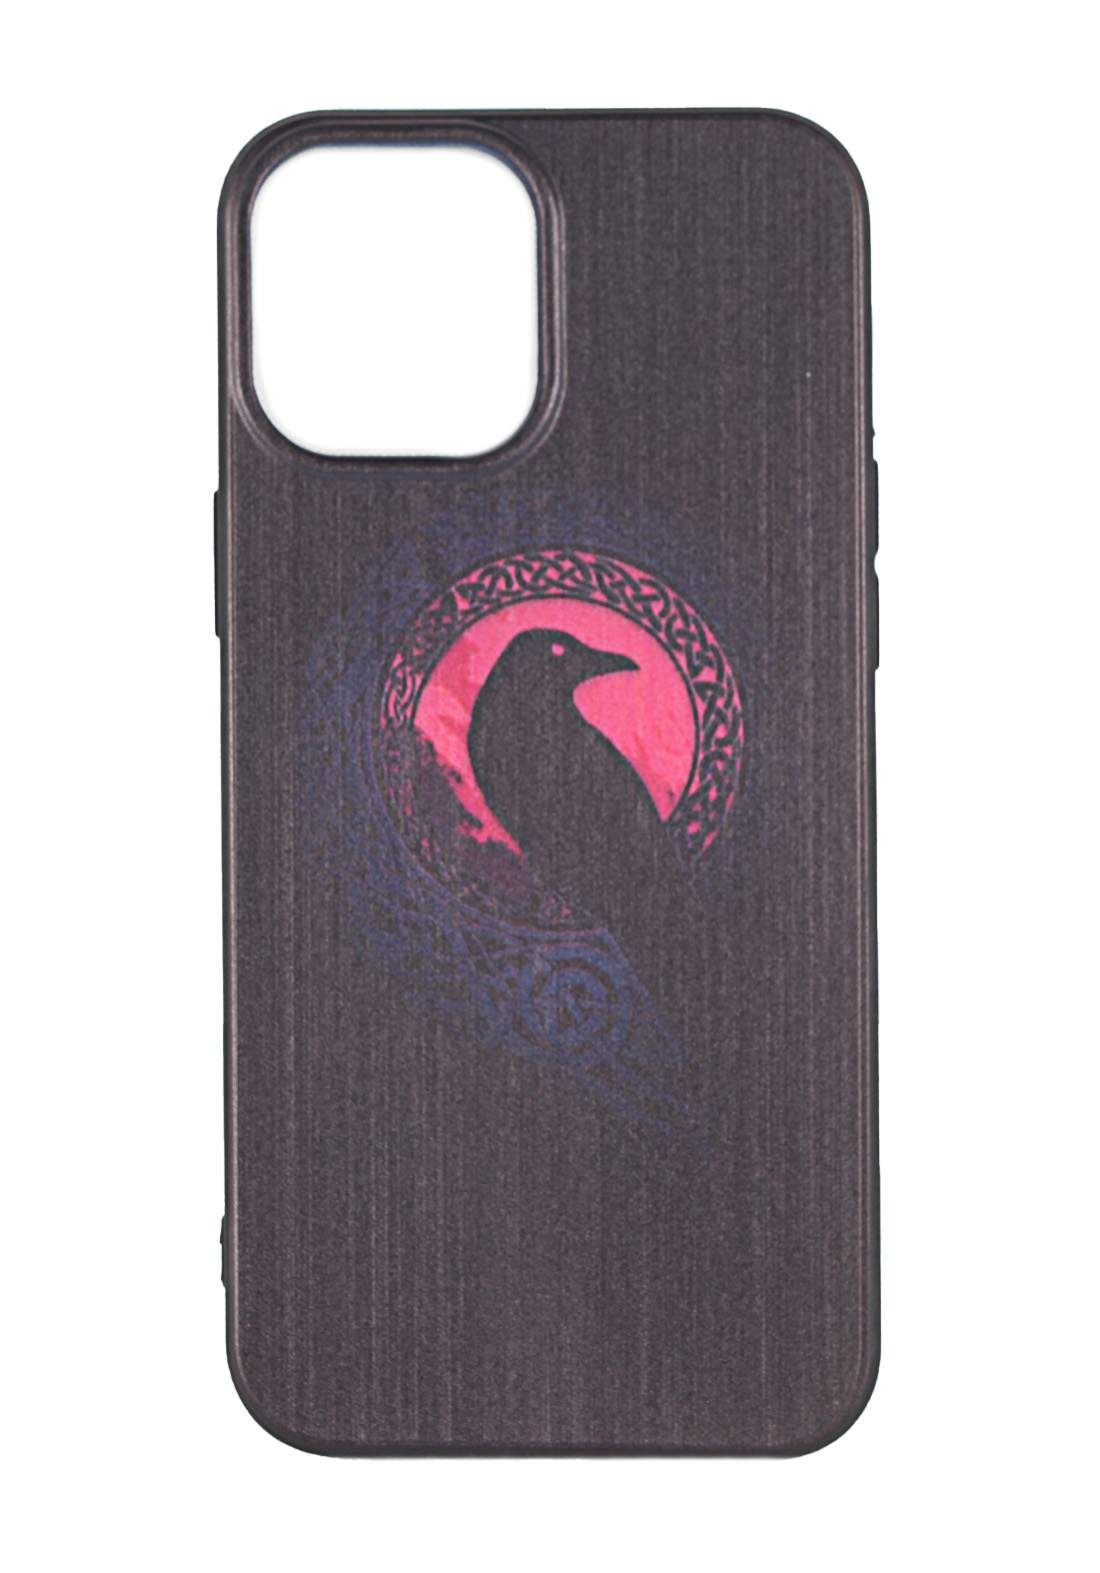 Protective Cover For Iphone 12 -Black حافظة موبايل